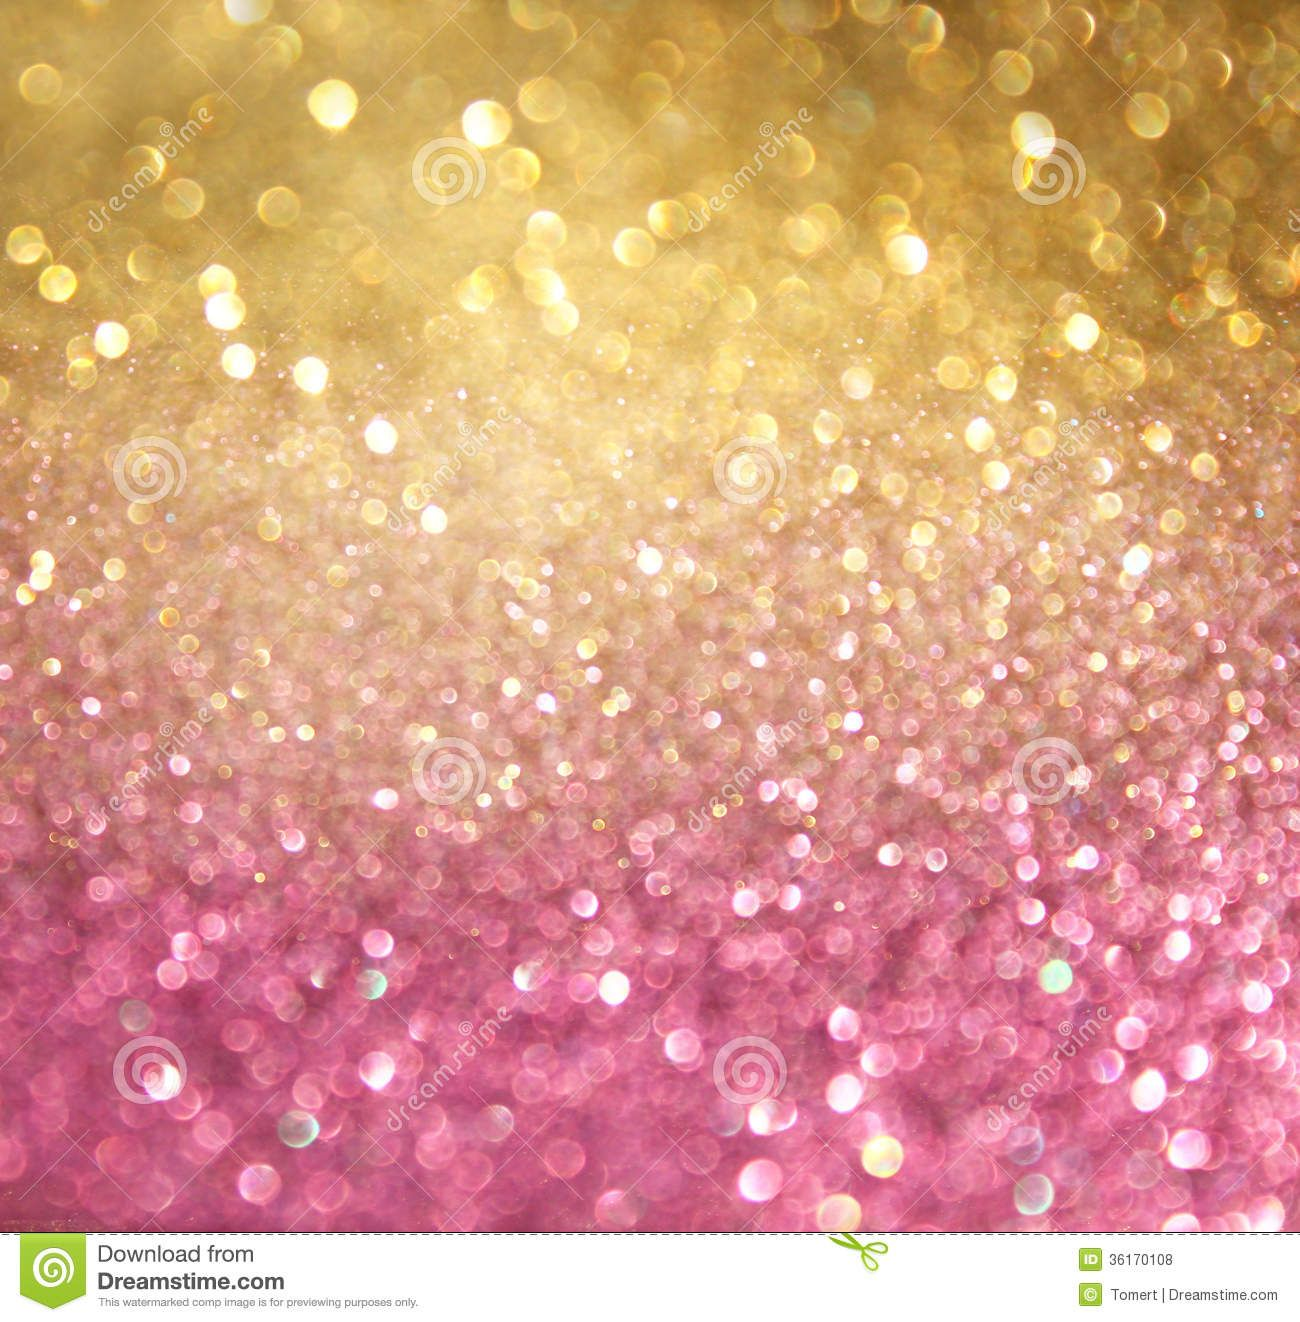 Pink and gold wallpaper wallpapersafari website for Baby pink glitter wallpaper